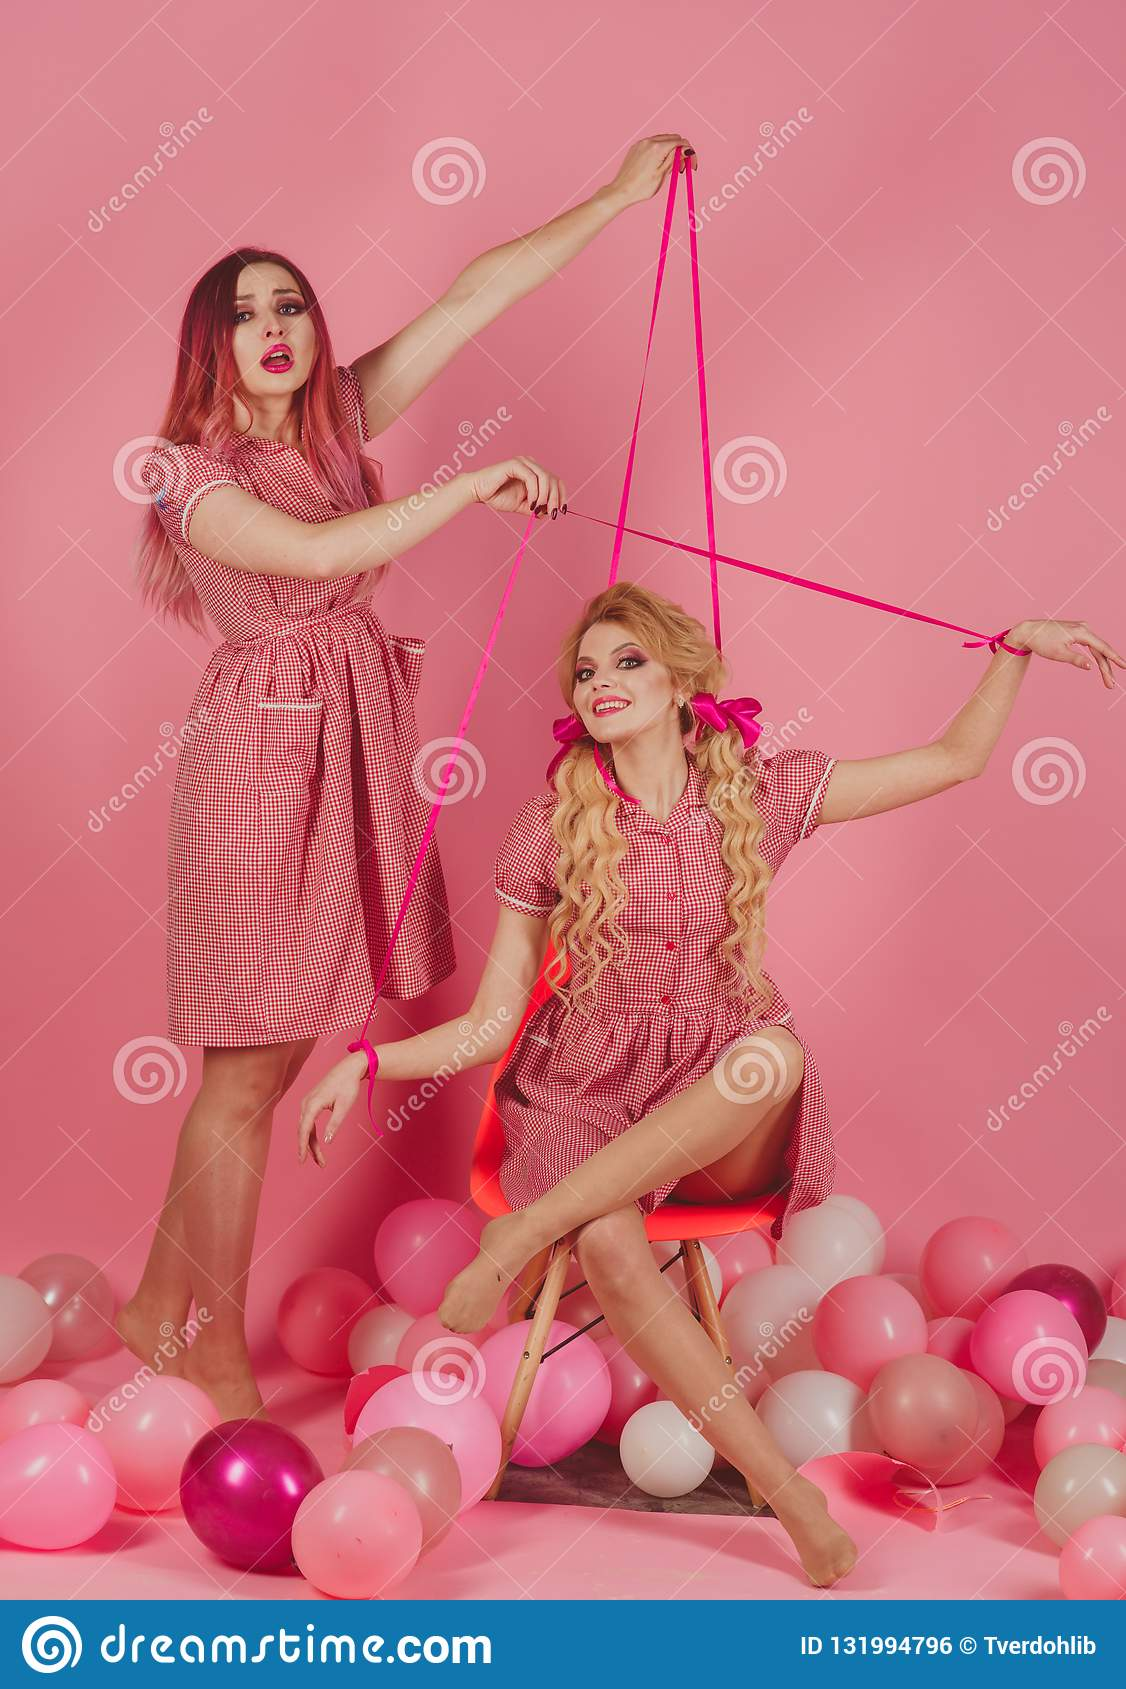 Holidays and dolls. Creative idea. Funny advertising. retro girls in party balloons. vintage fashion women puppet. Crazy